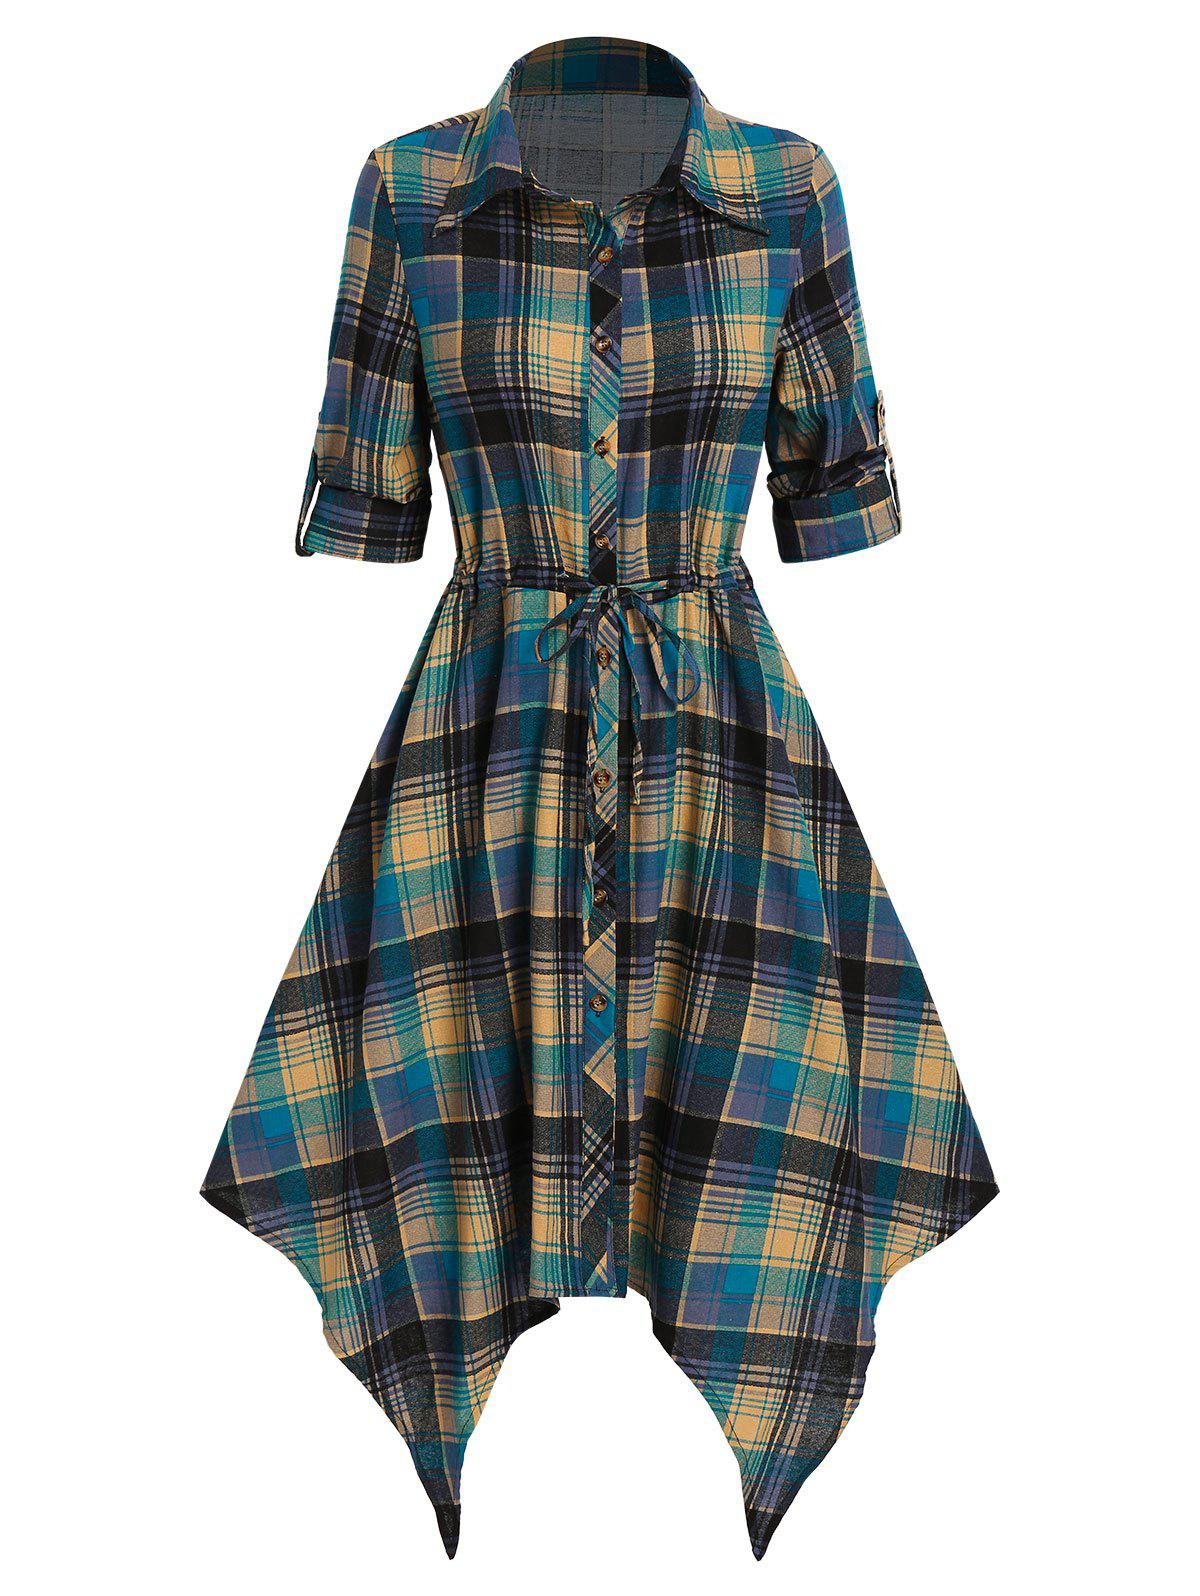 Plaid Print Drawstring Irregular Shirt Dress - multicolor B XL